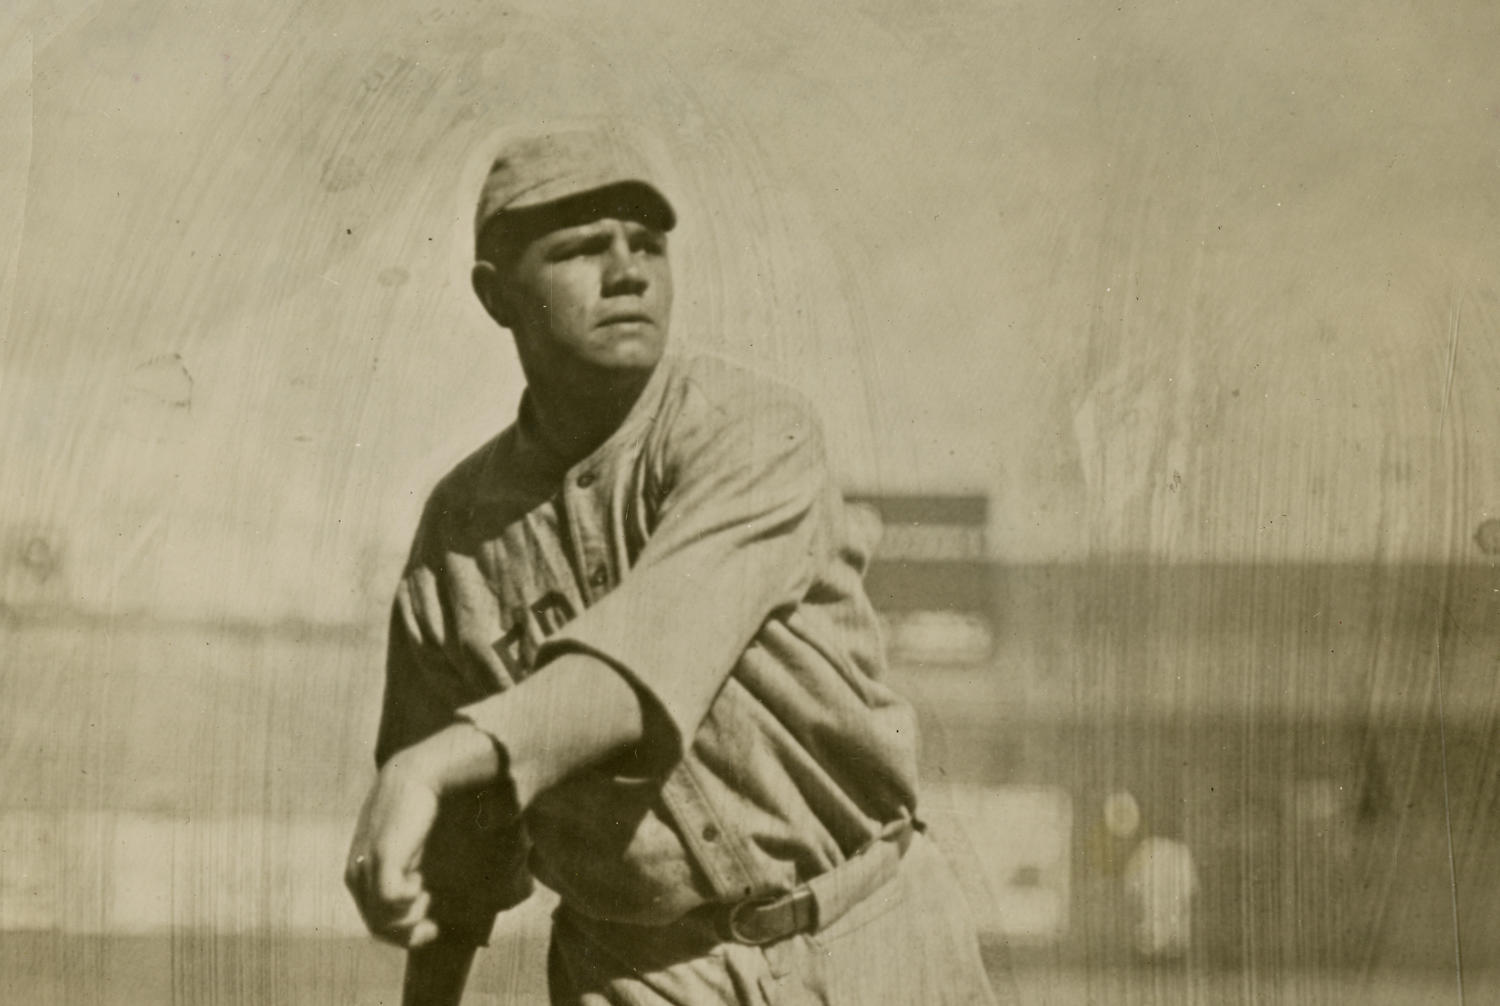 How Many World Series Did Babe Ruth Win